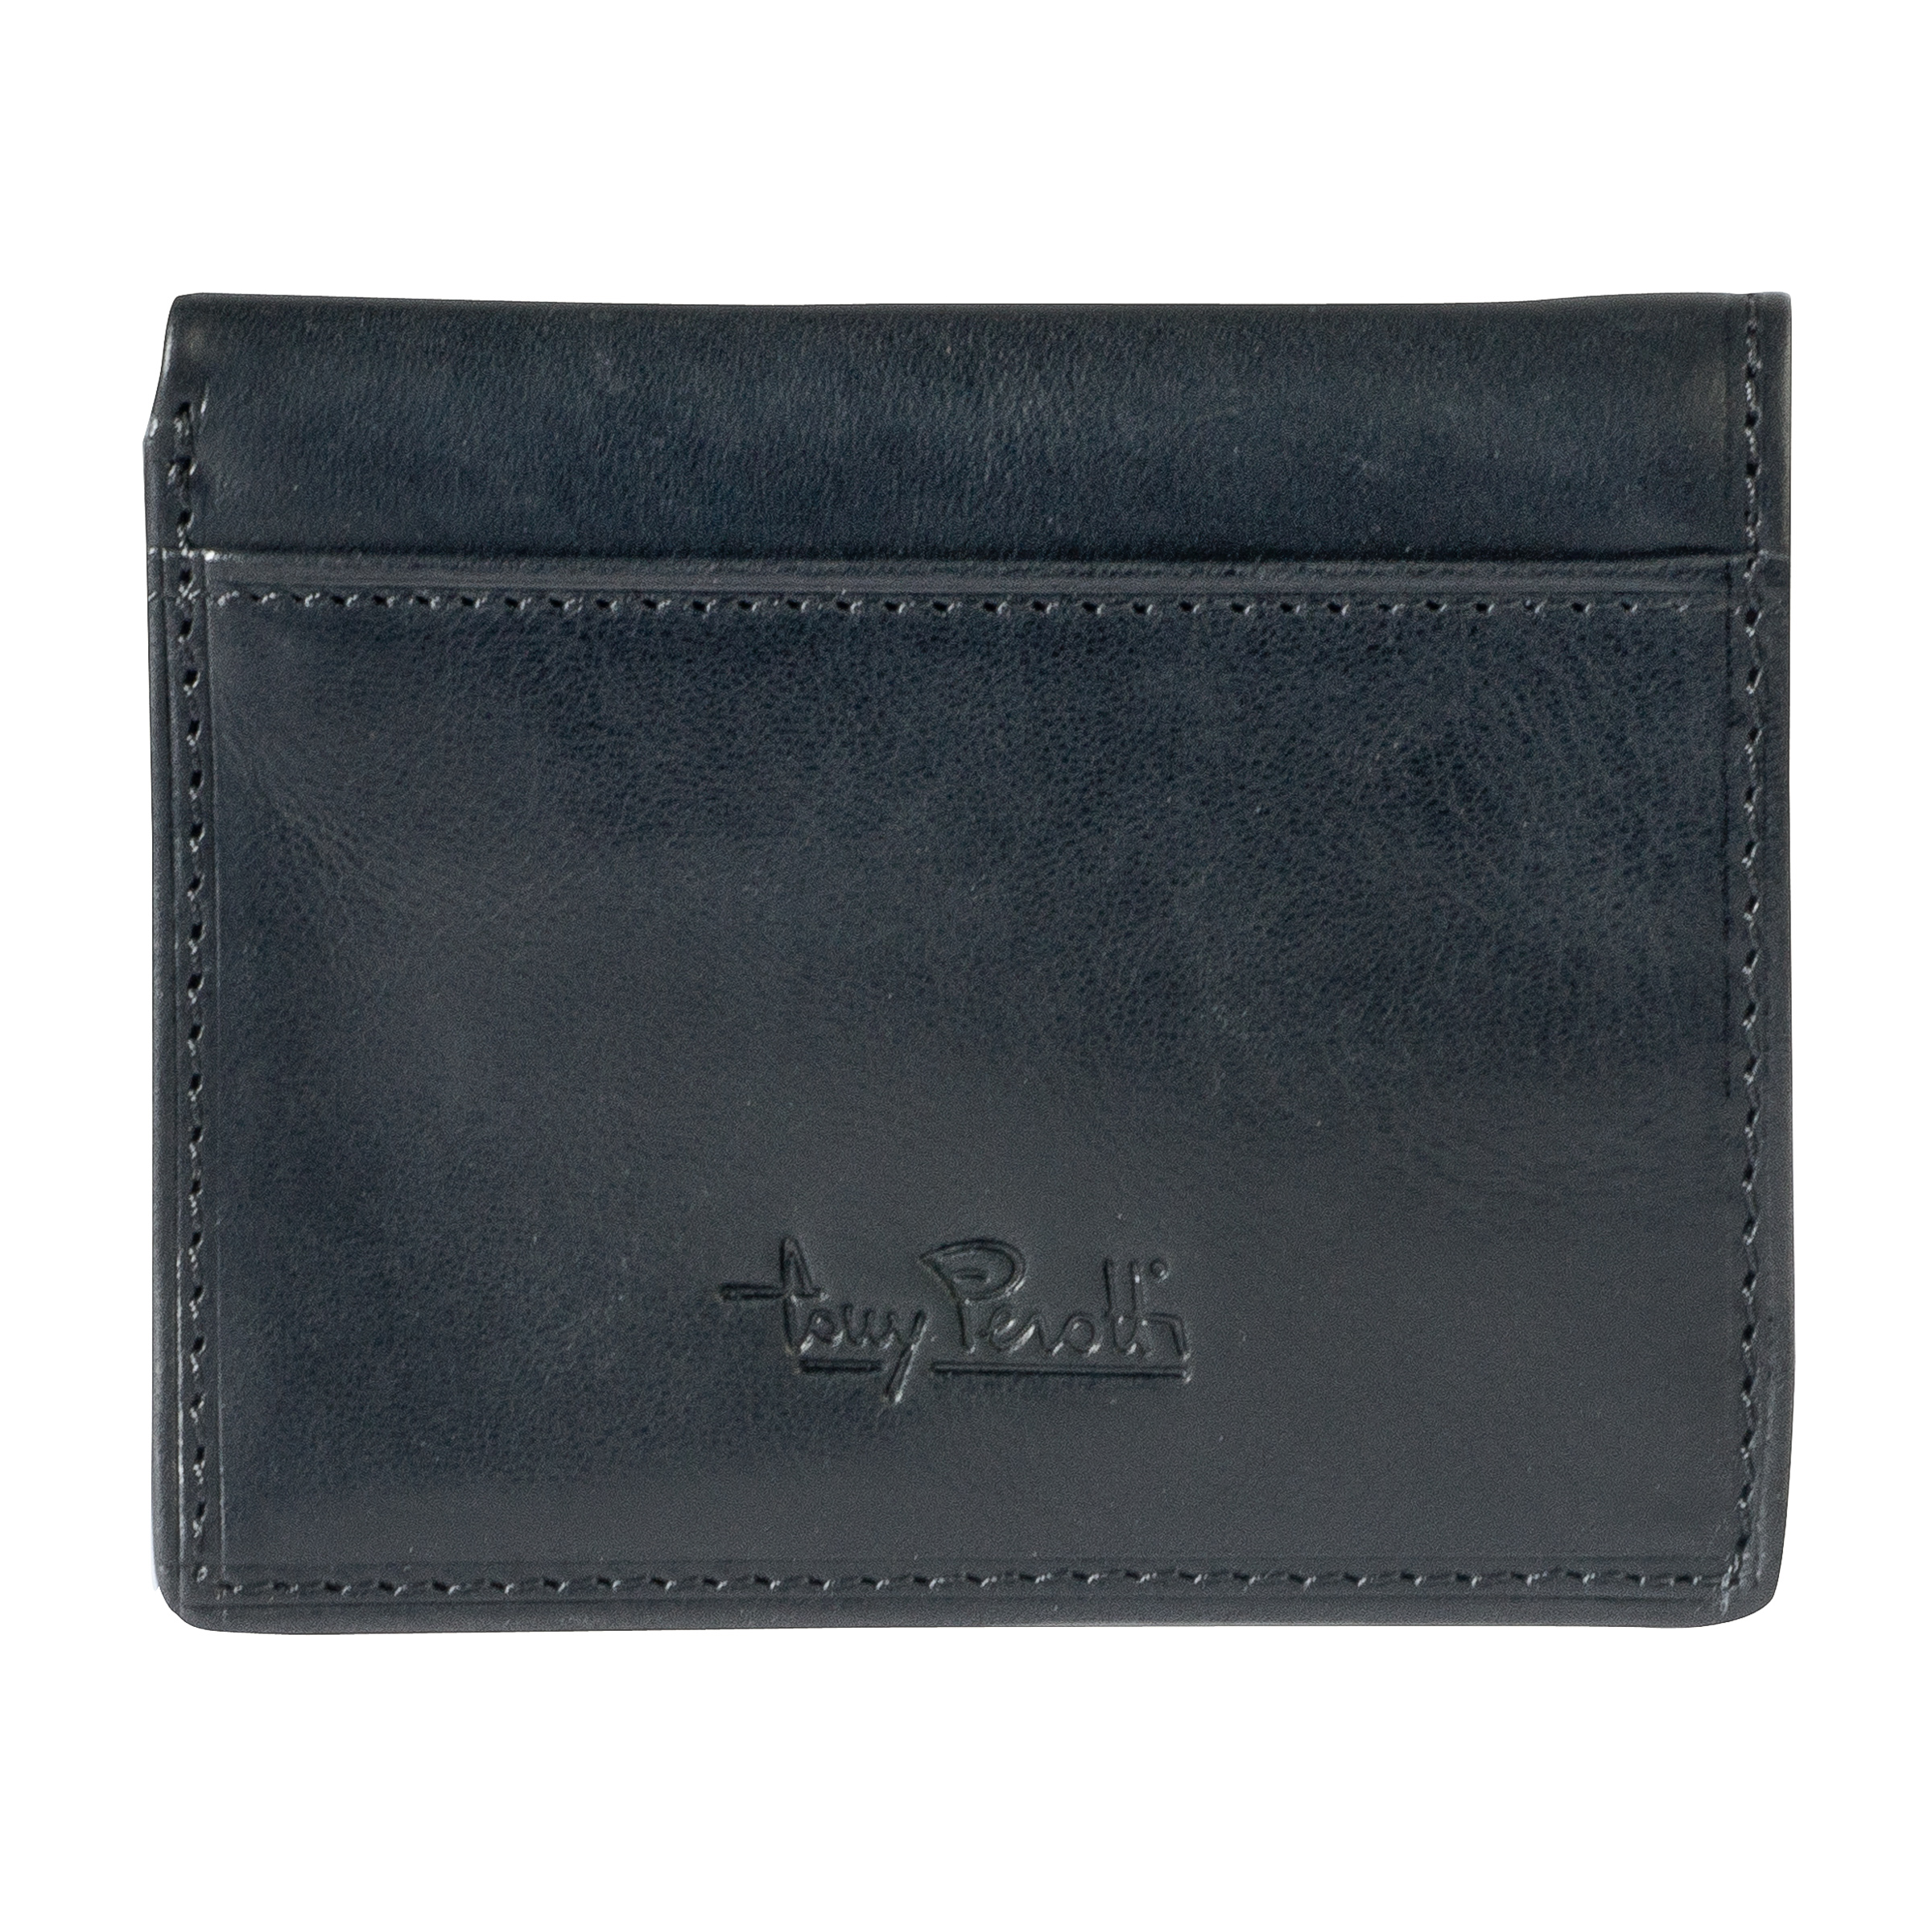 Tony Perotti Credit Card Wallet with Banknote Pocket Black